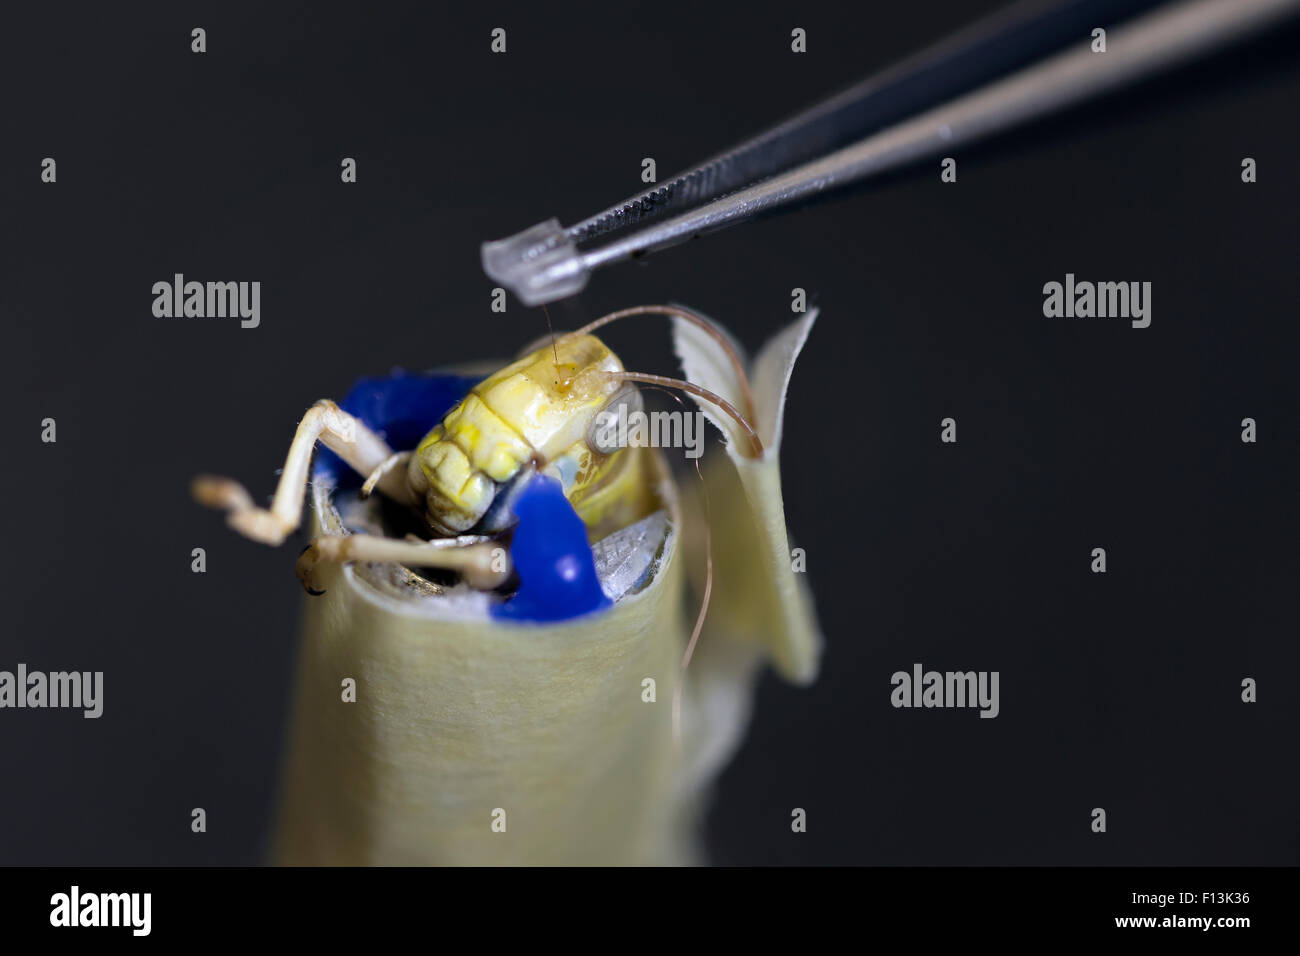 Scientists implanting wires in the brain of a  Desert locust (Schistocerca gregaria) to measure brain activity. - Stock Image